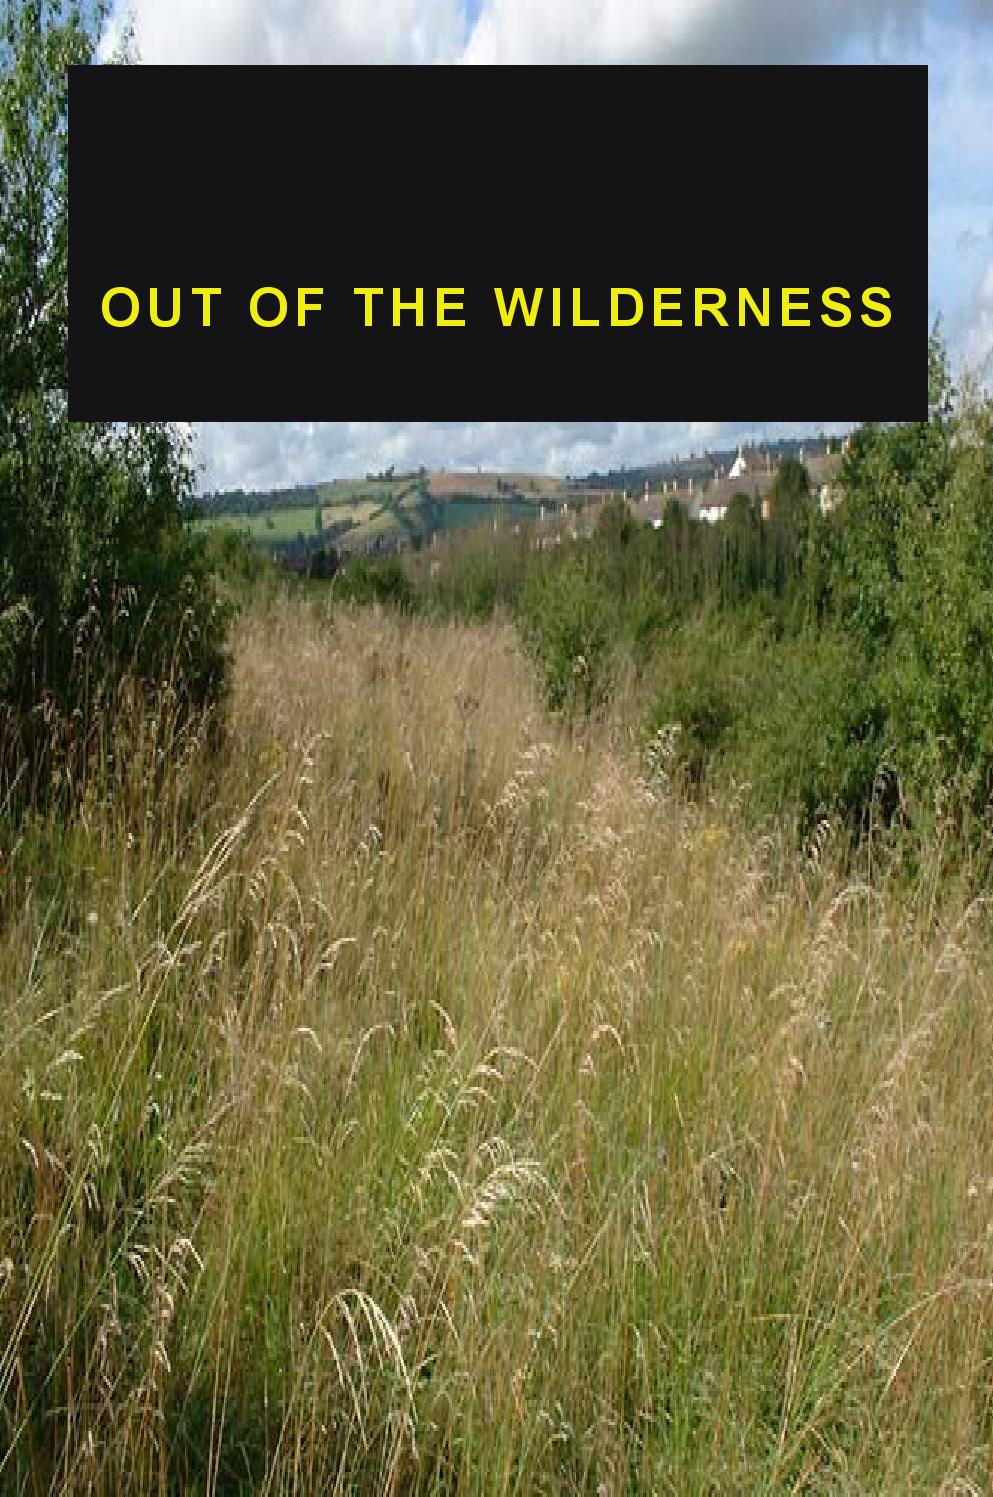 out of the wildernessrichard s pearson - issuu